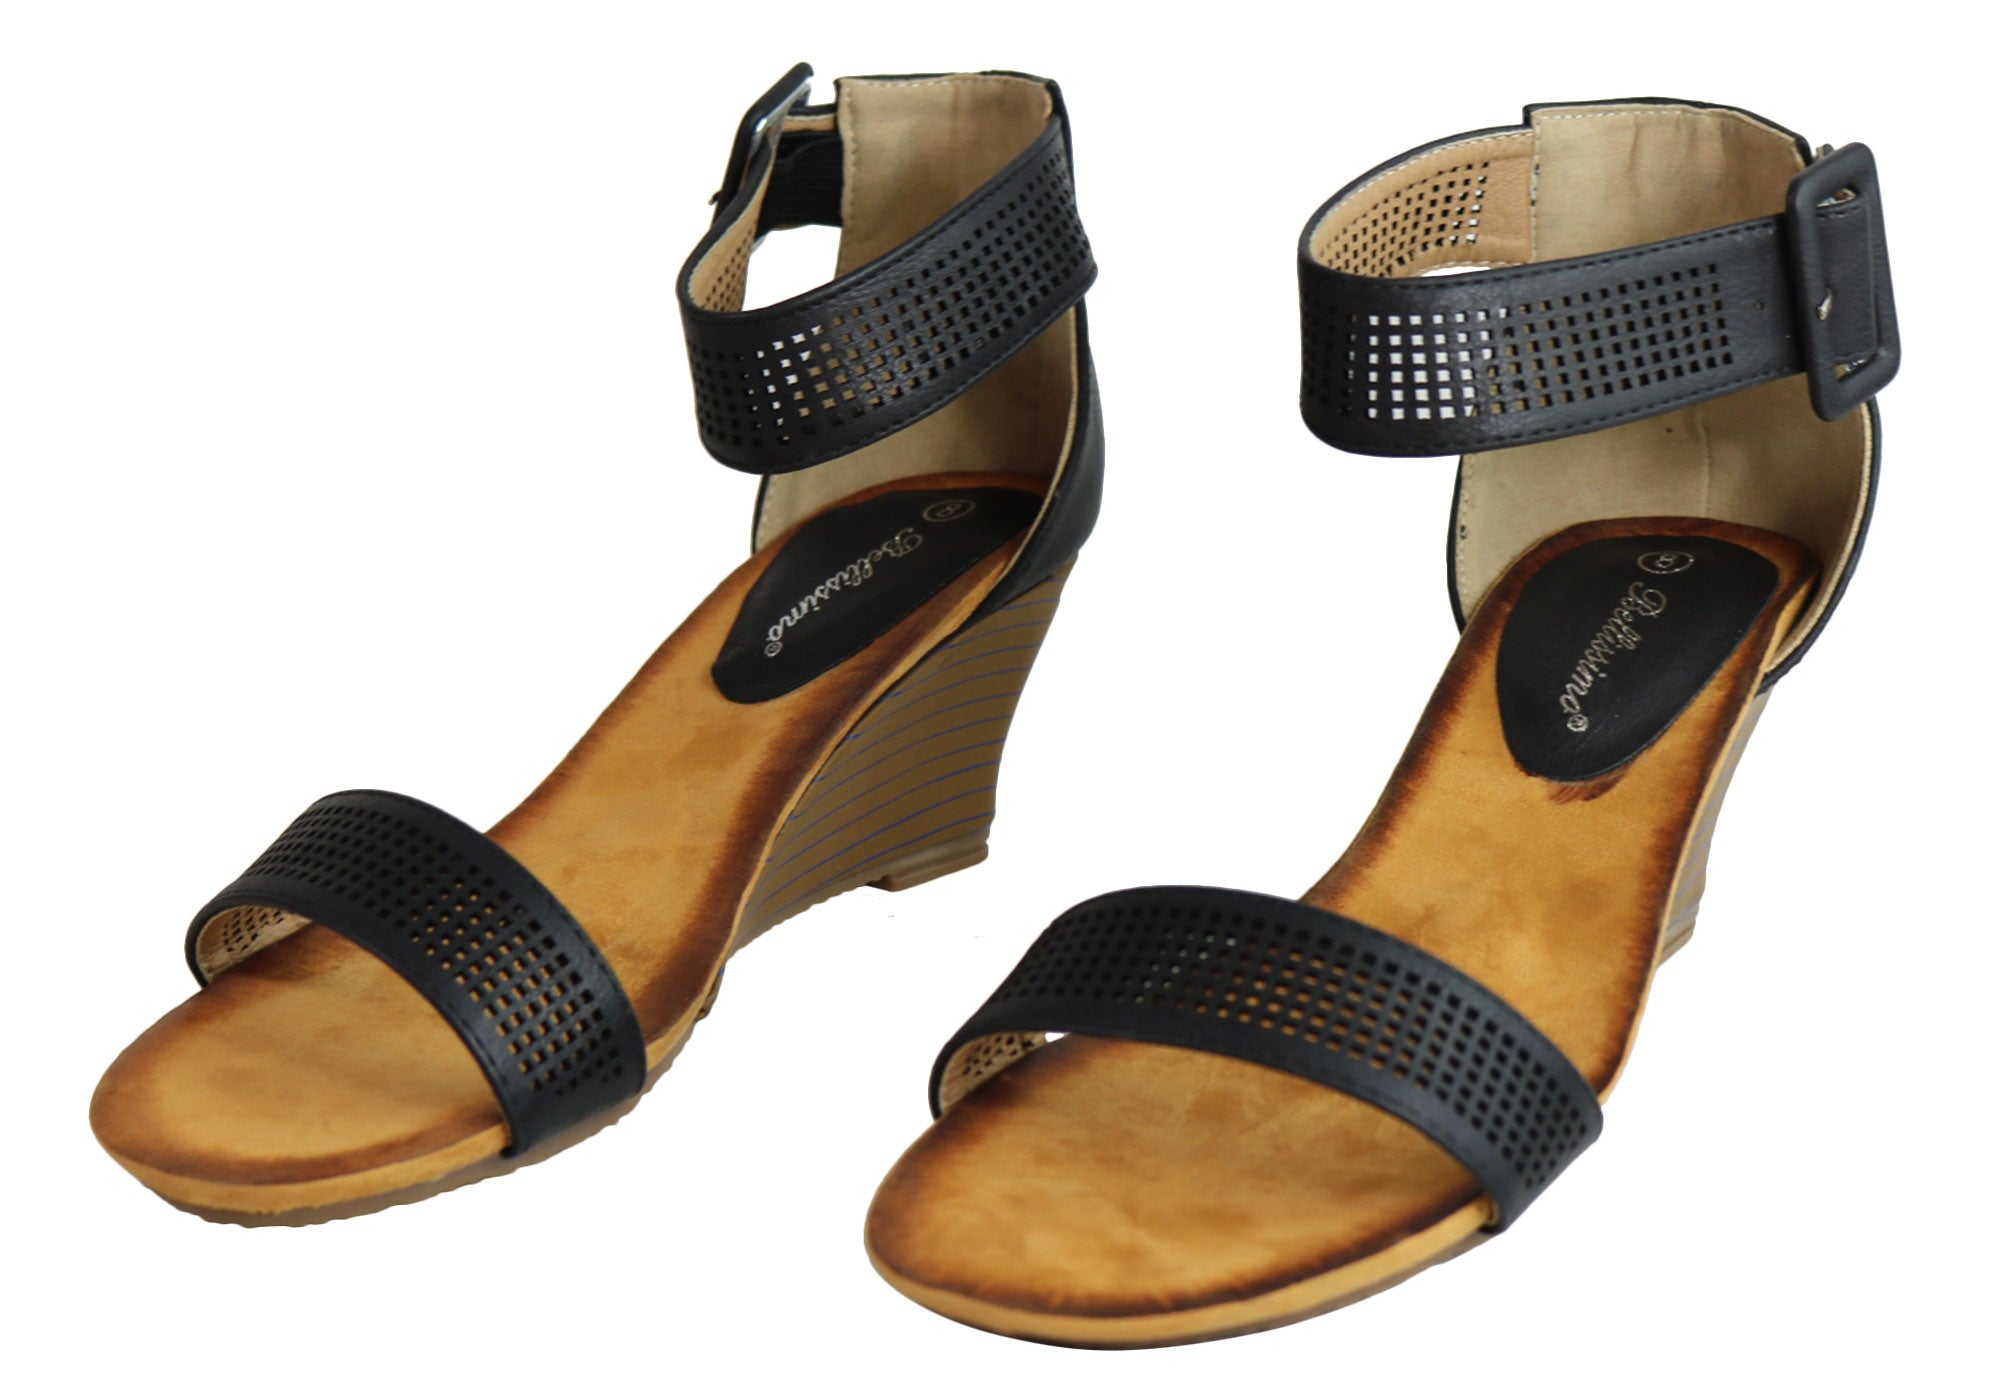 96fc0577efd Home Bellissimo Lava Womens Comfortable Fashion Mid Heel Wedge Sandals.  Black  Tan  Tan  Tan  Tan  Tan  Black  Black  Black  Black ...